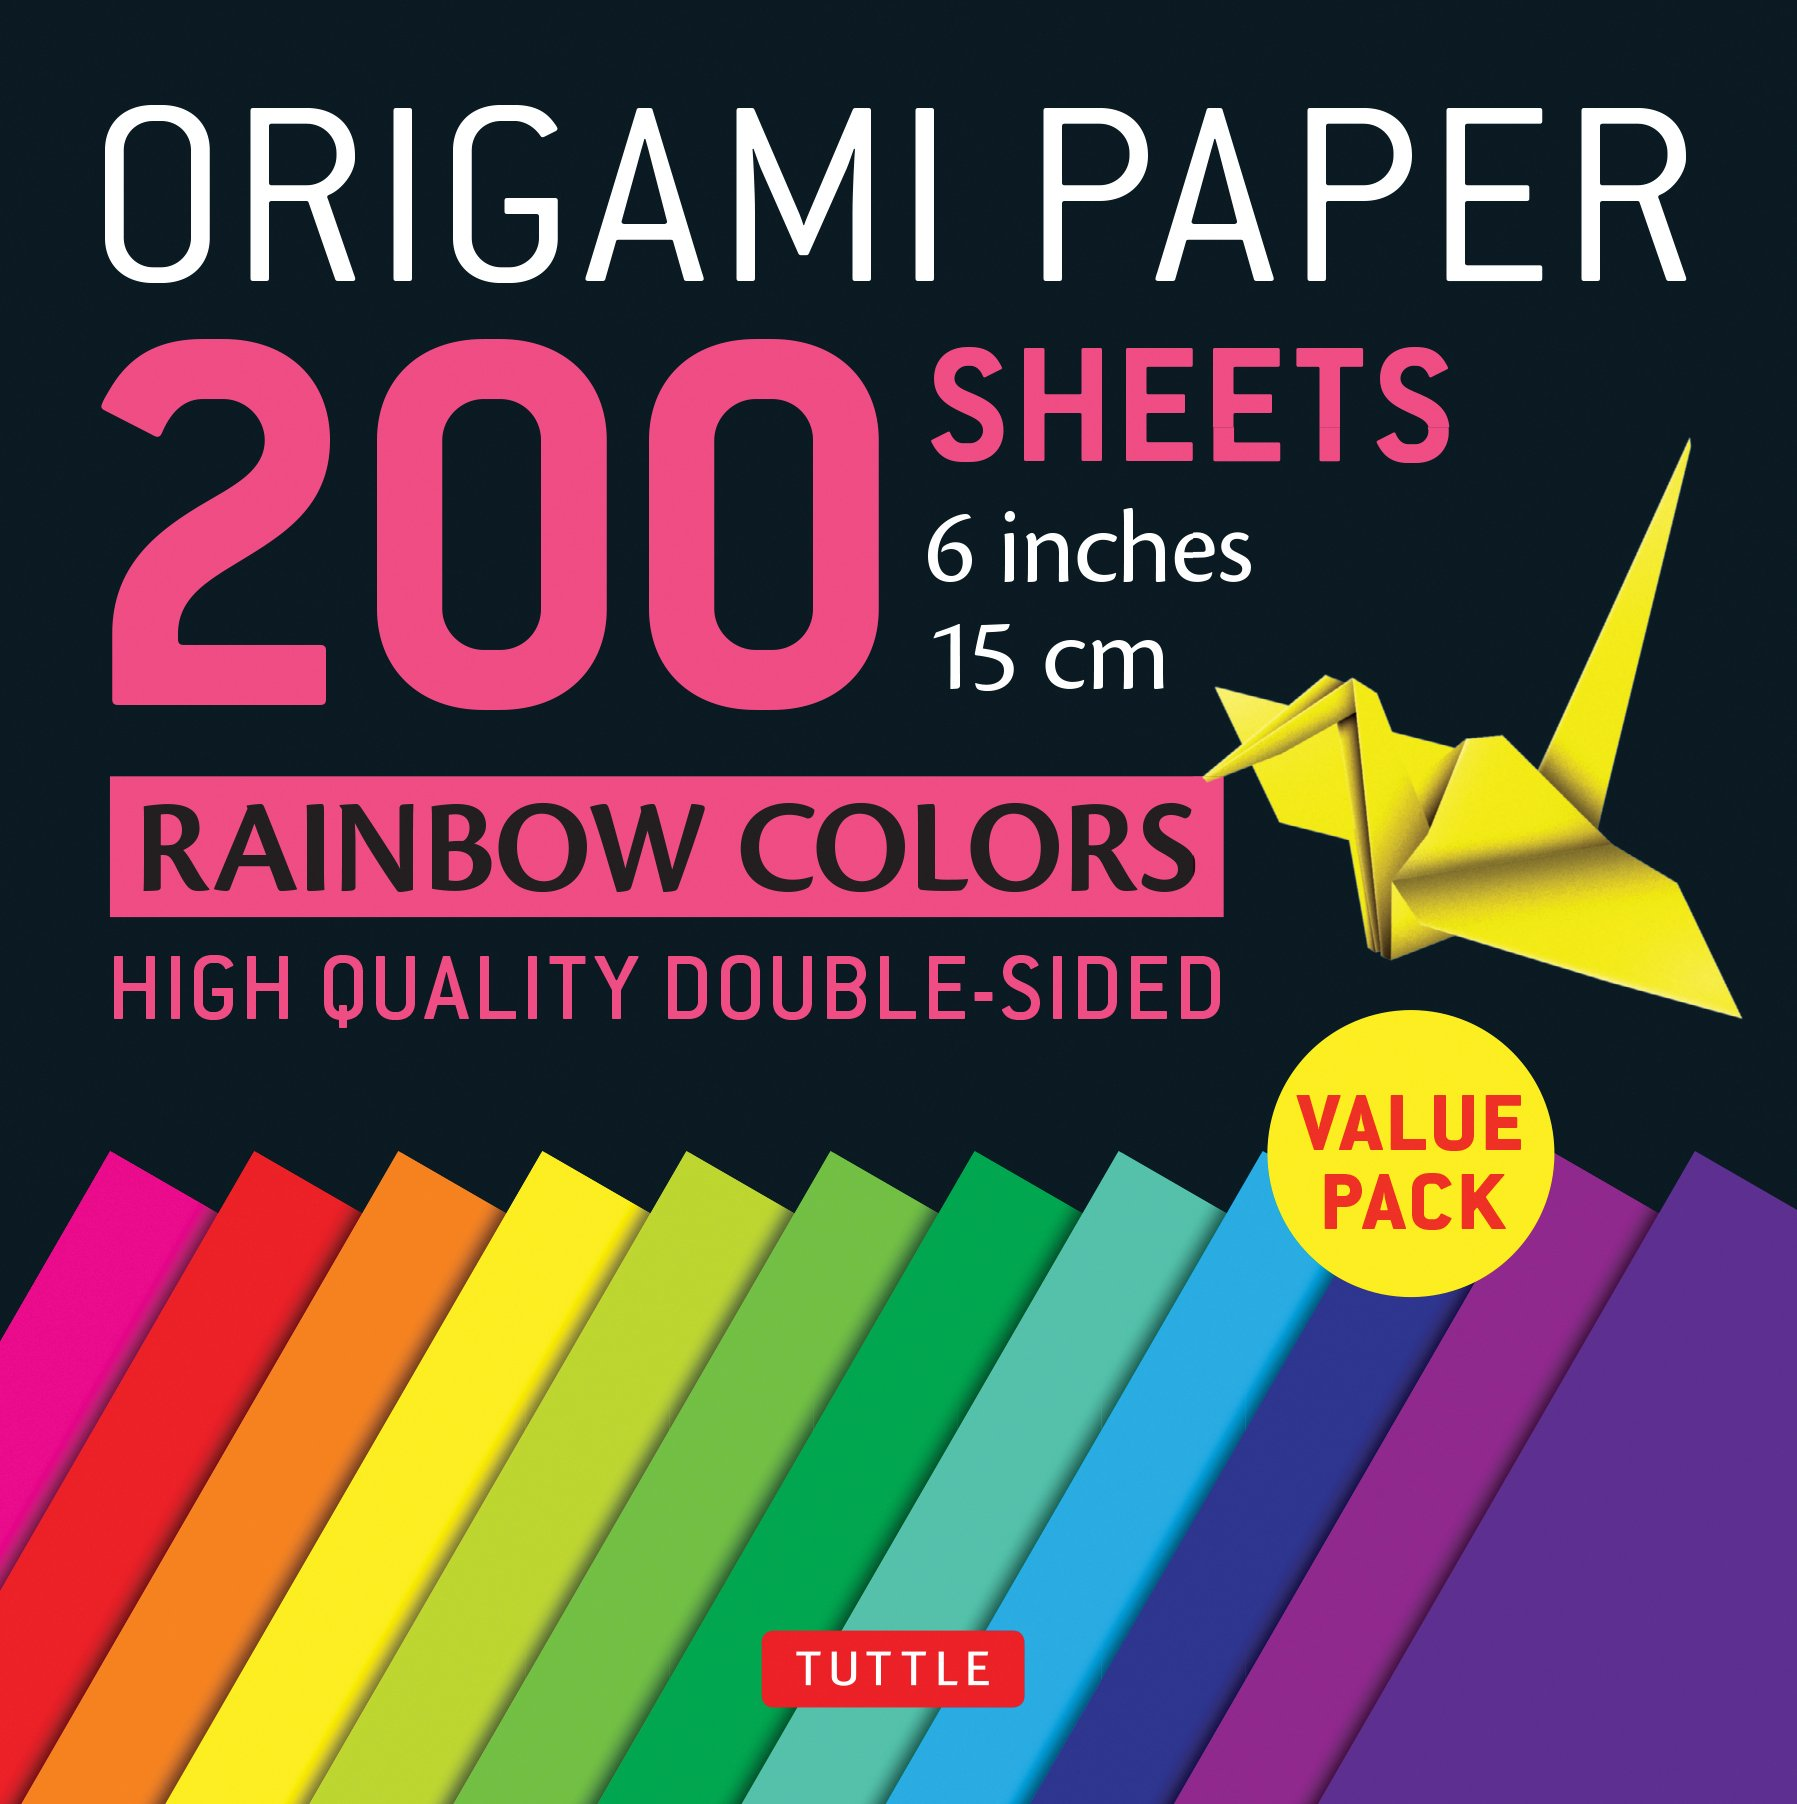 Origami Paper 200 sheets Rainbow Colors 6